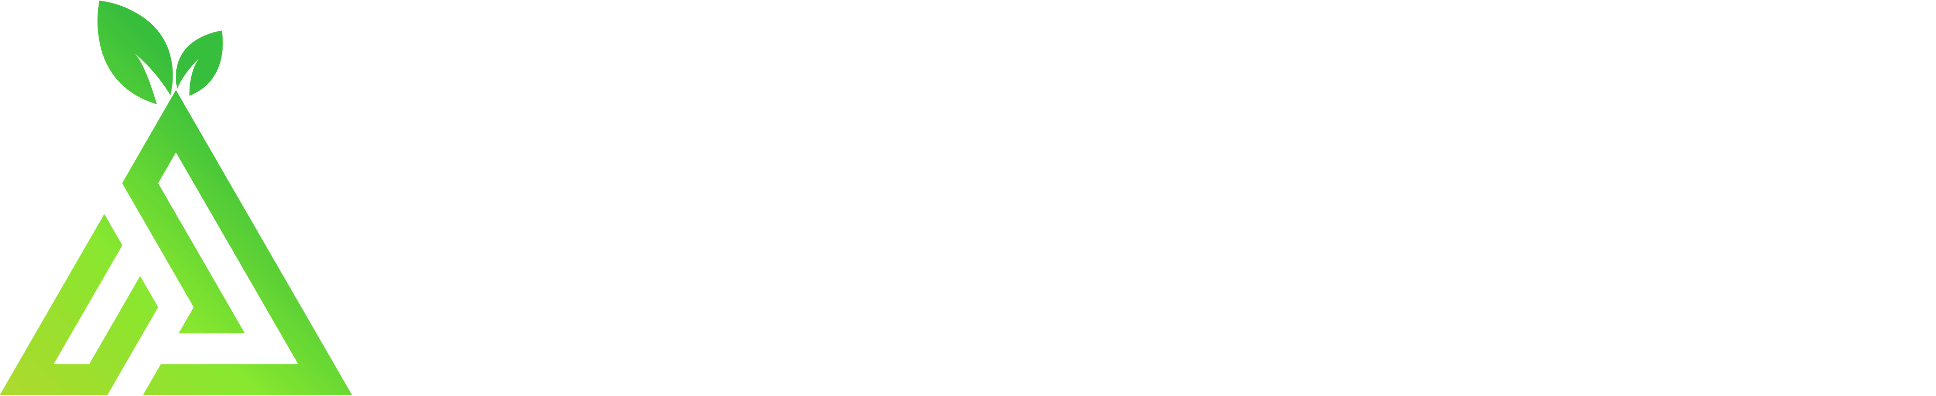 Asic Jungle Logo